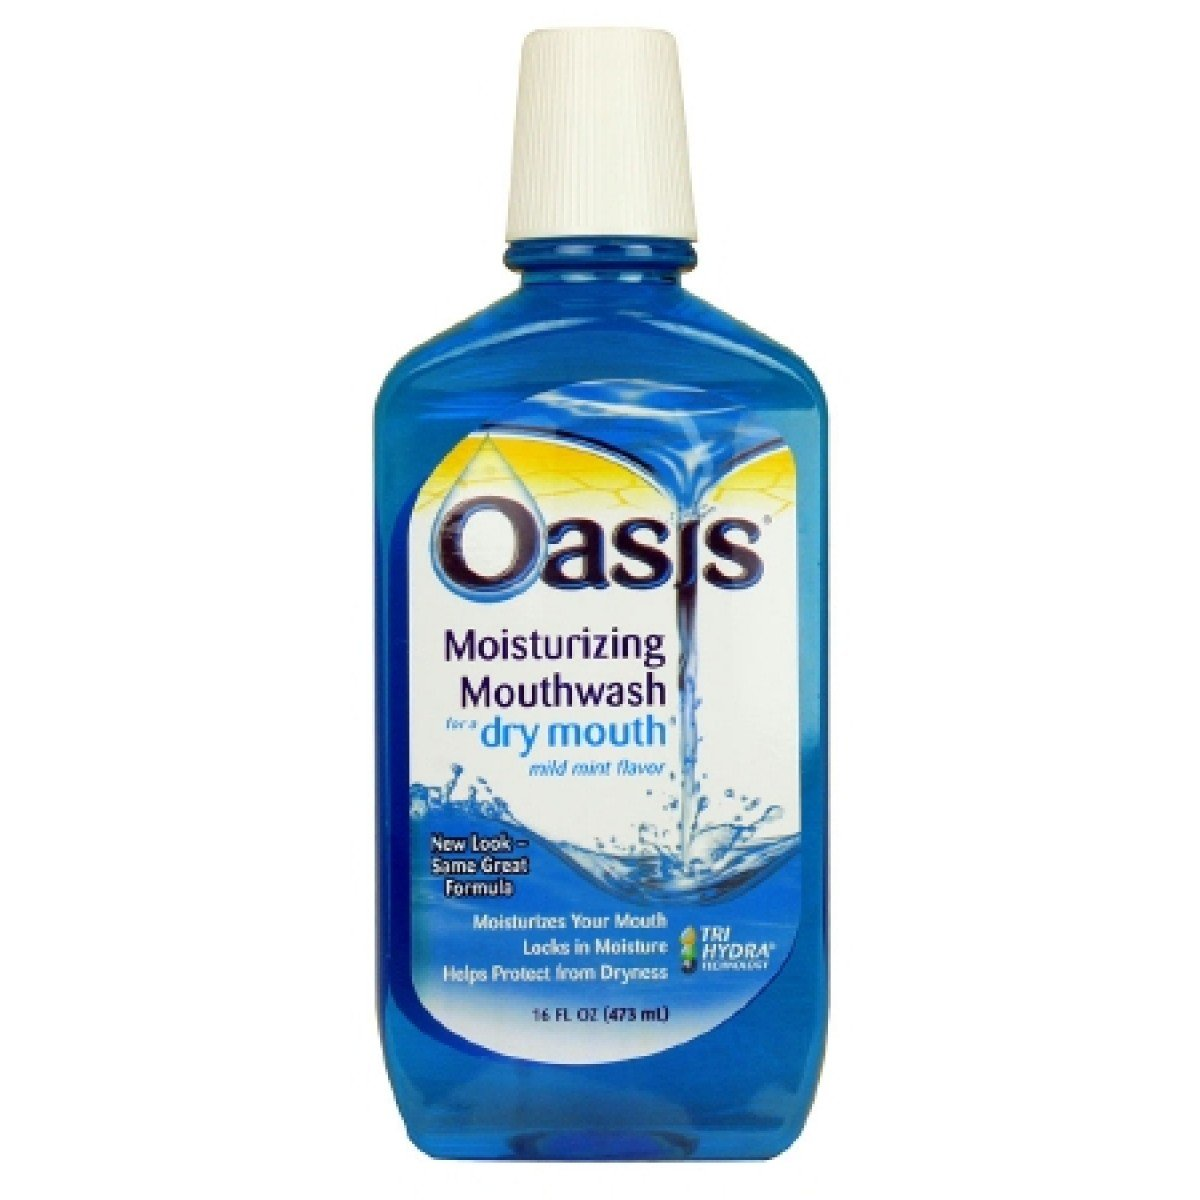 Oasis Moisturizing Mouthwash For Dry Mouth Mild Mint, Mild Mint - 16 oz (Pack of 4) by Emerson